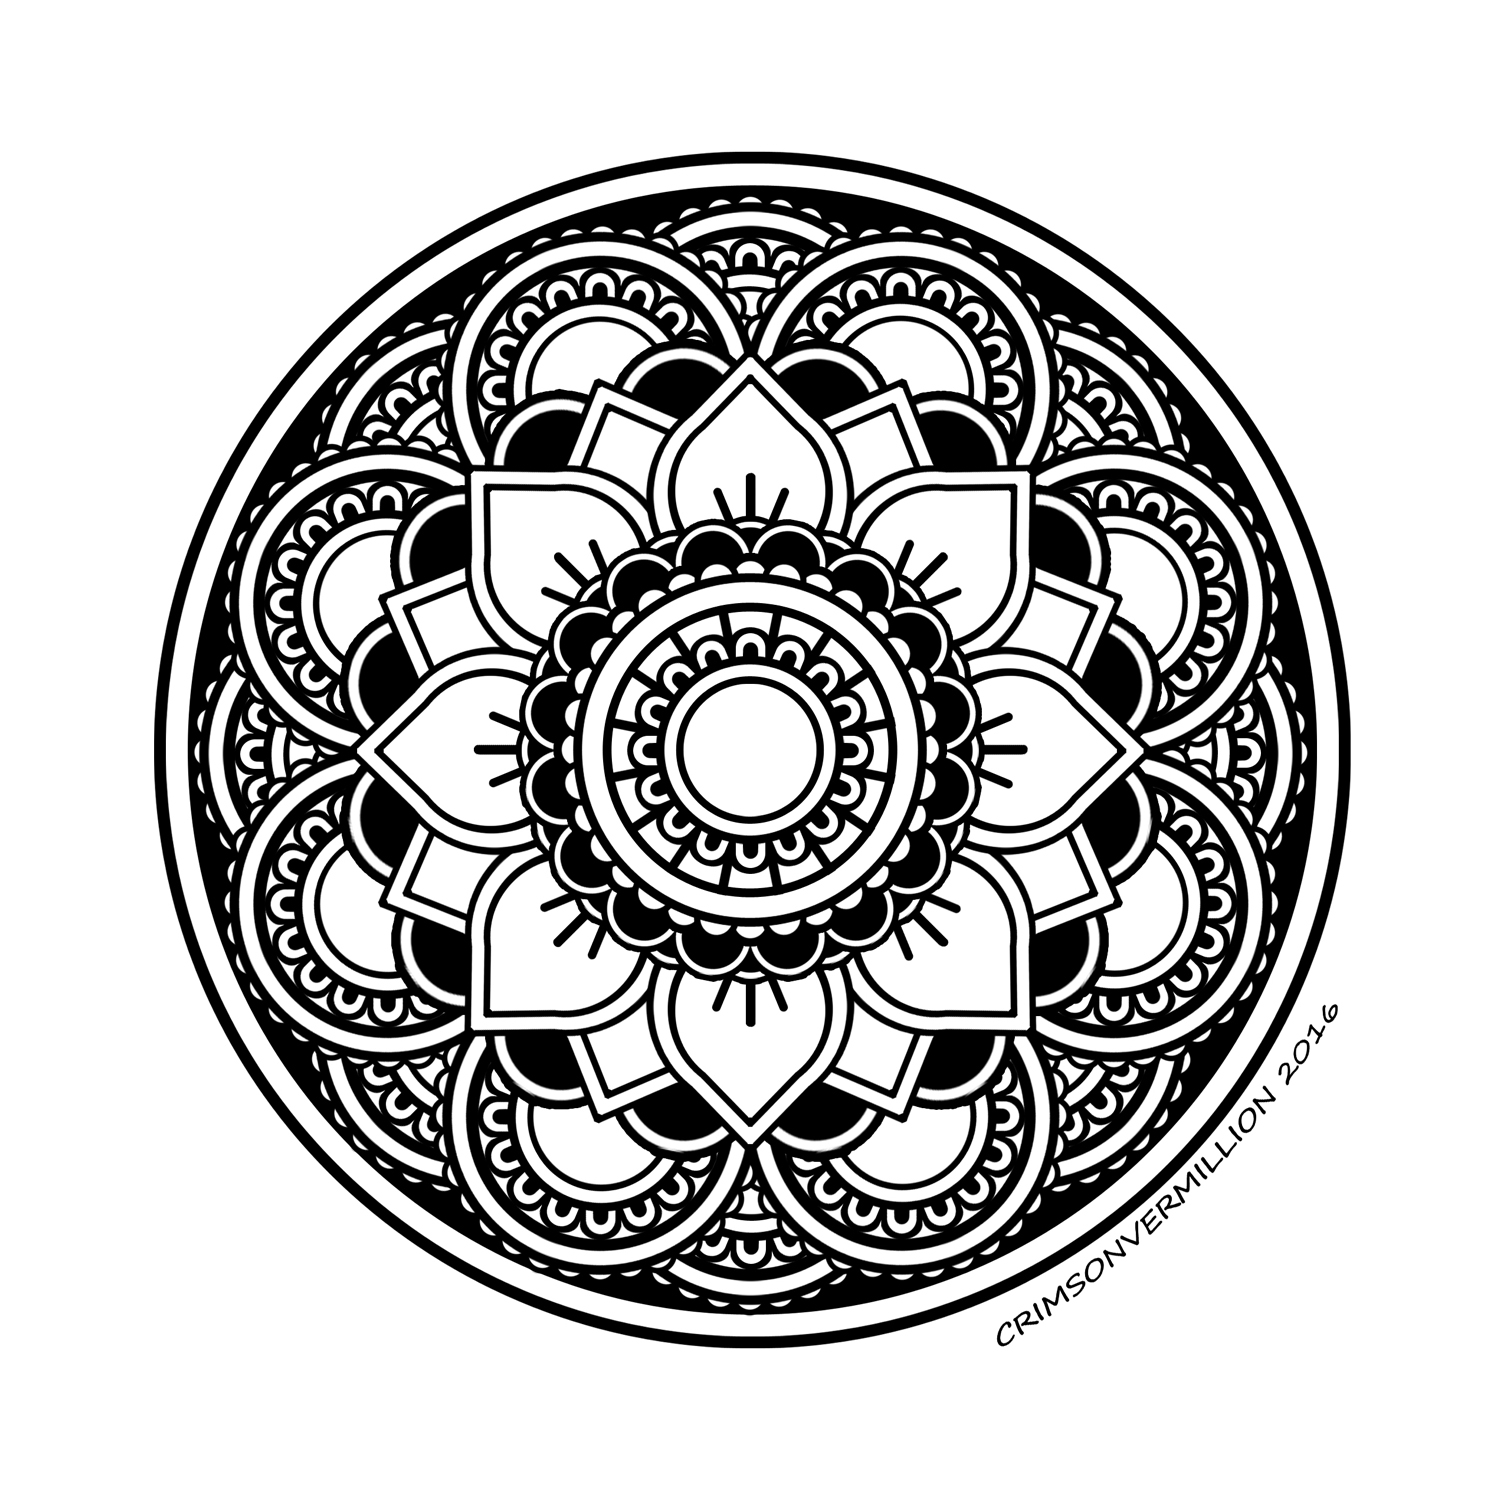 This mandala is a perfect representation of respect and unity!